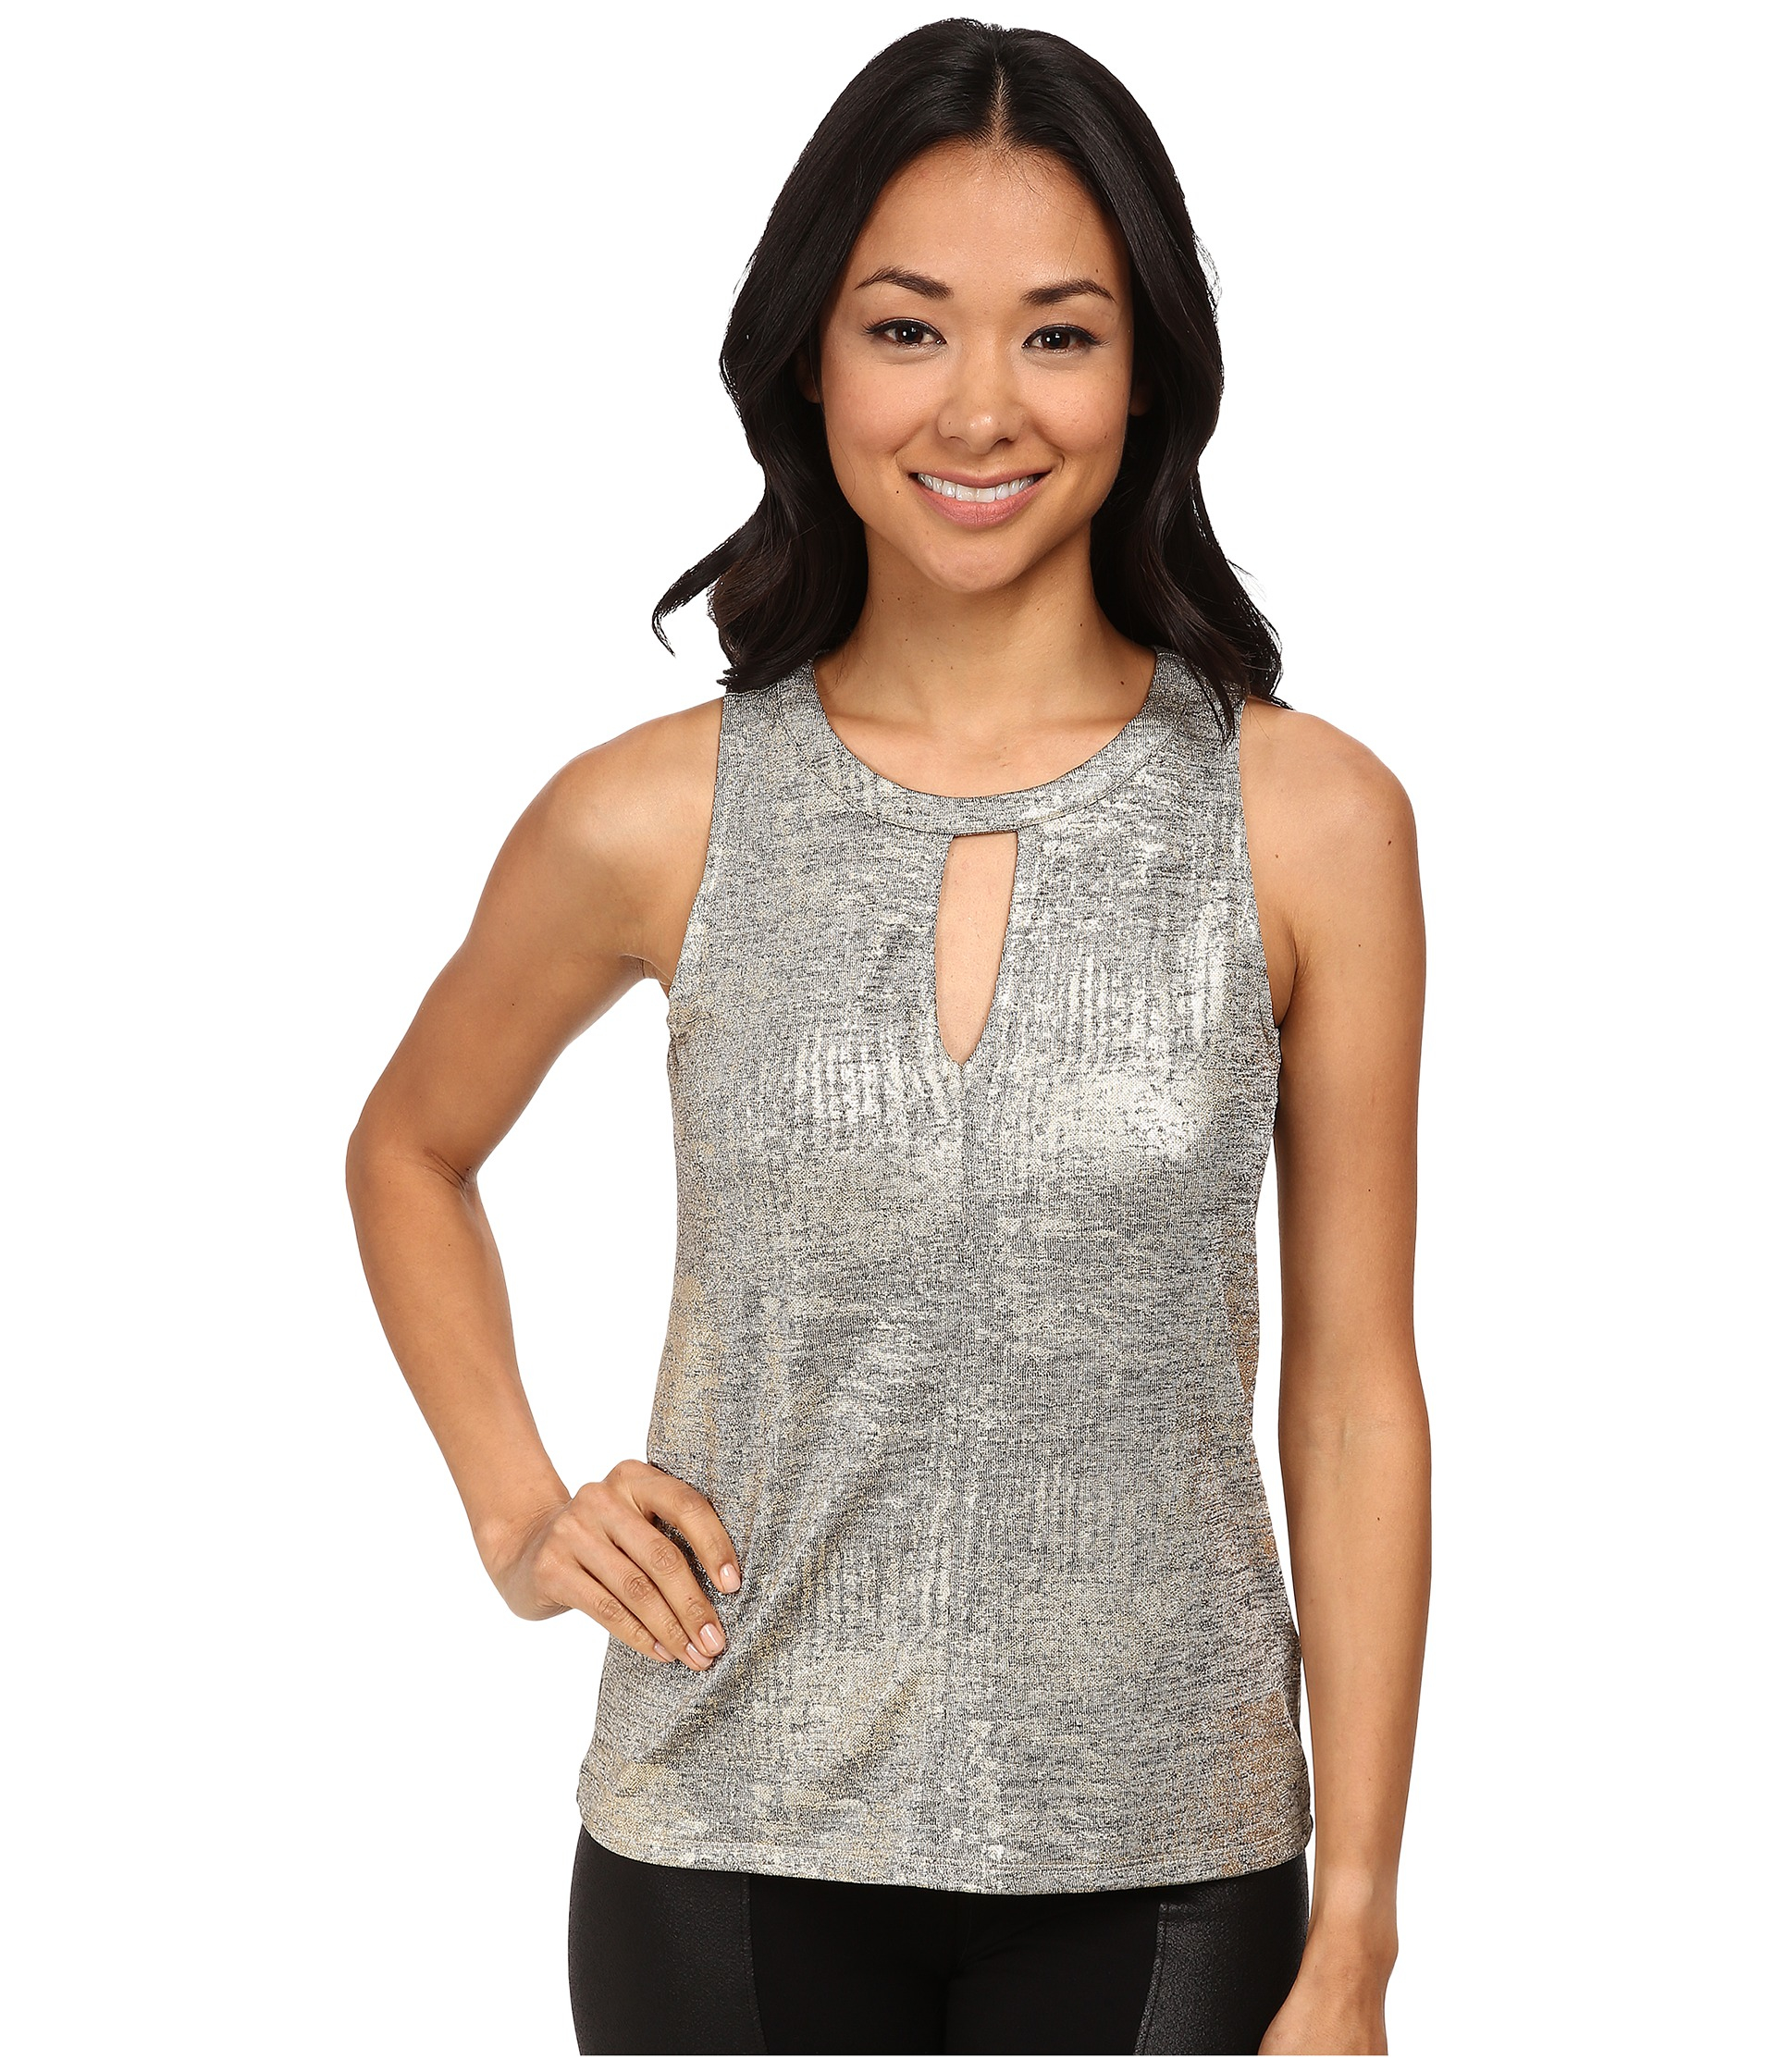 72d0e8d1a4218 Lyst - DKNY Shimmer Foiled Texture Jersey Keyhole Front Top in Metallic